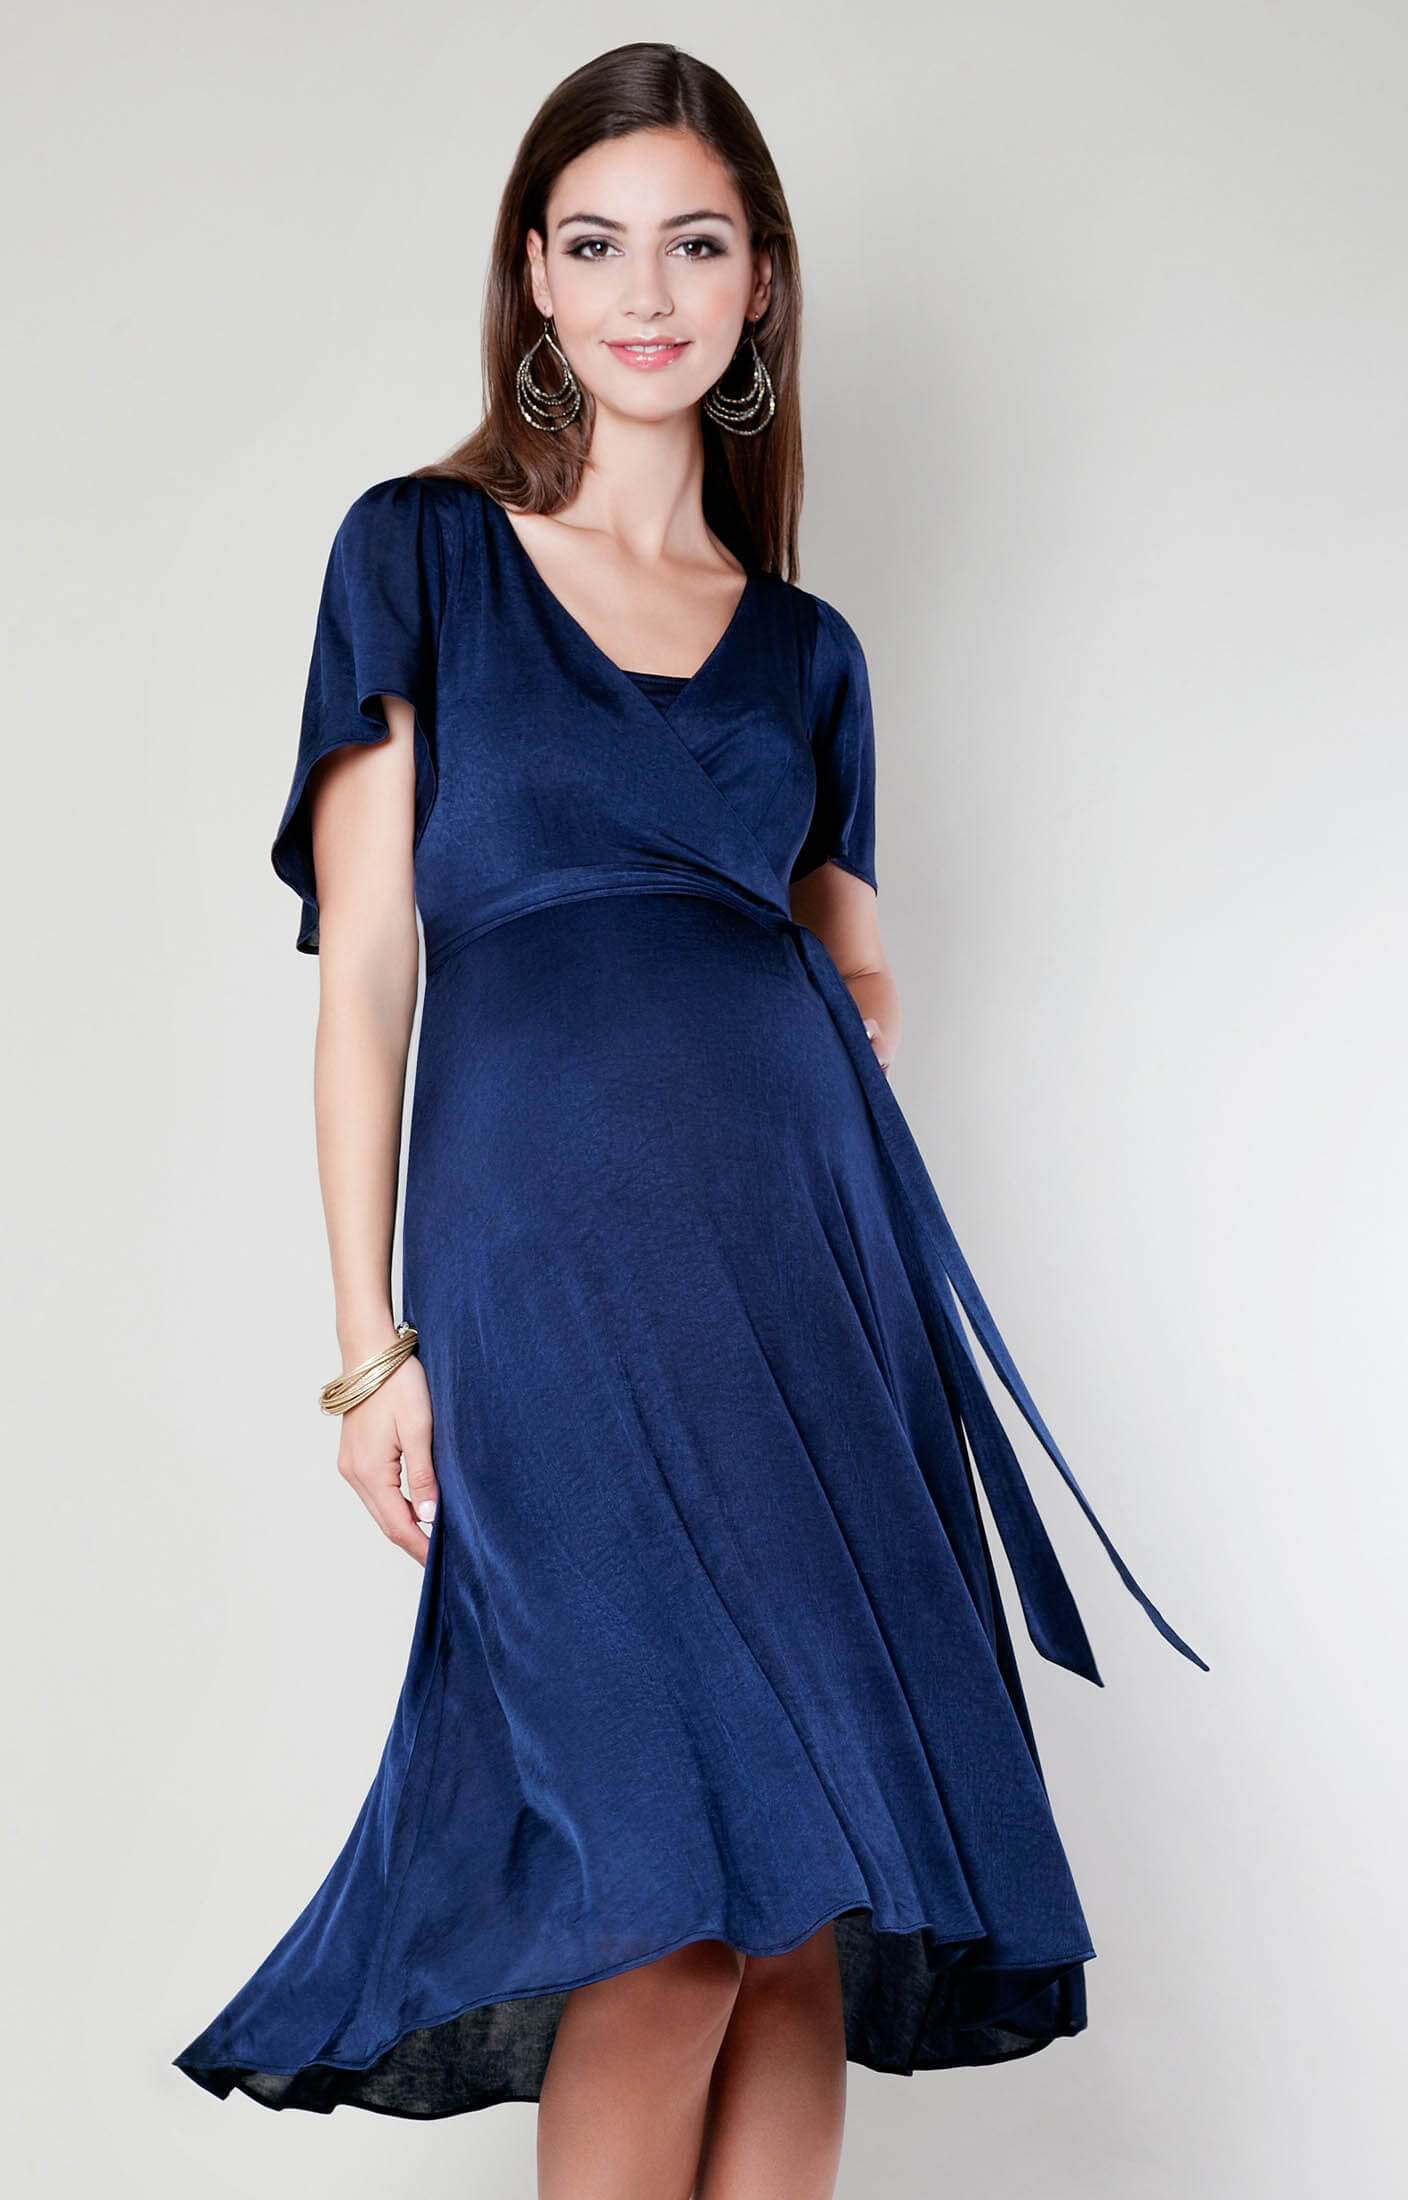 Cocoon nursing dress velvet blue maternity wedding for Postpartum dresses for wedding